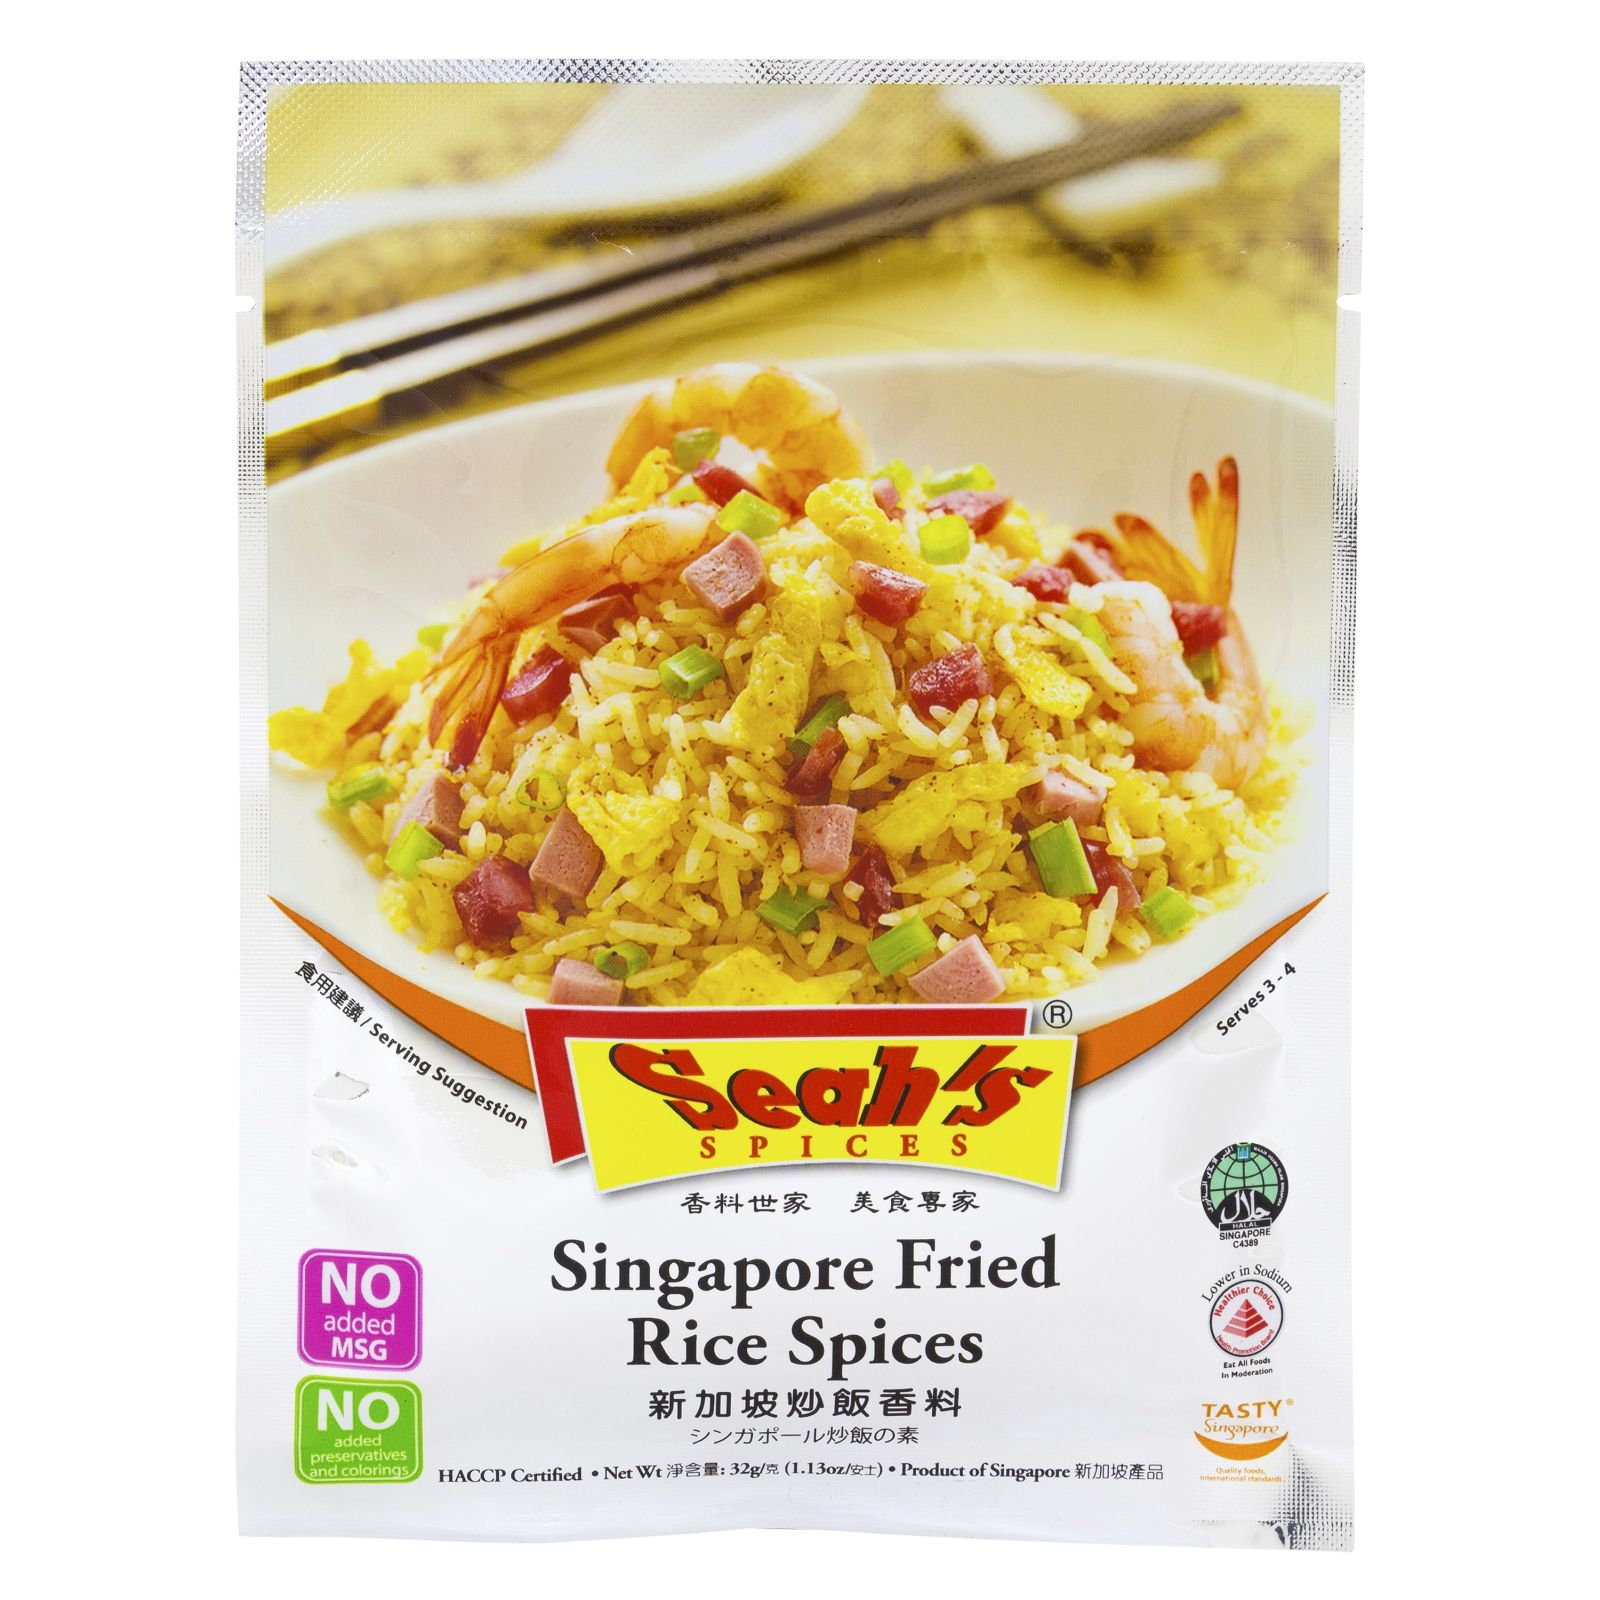 Singapore Fried Rice Spices